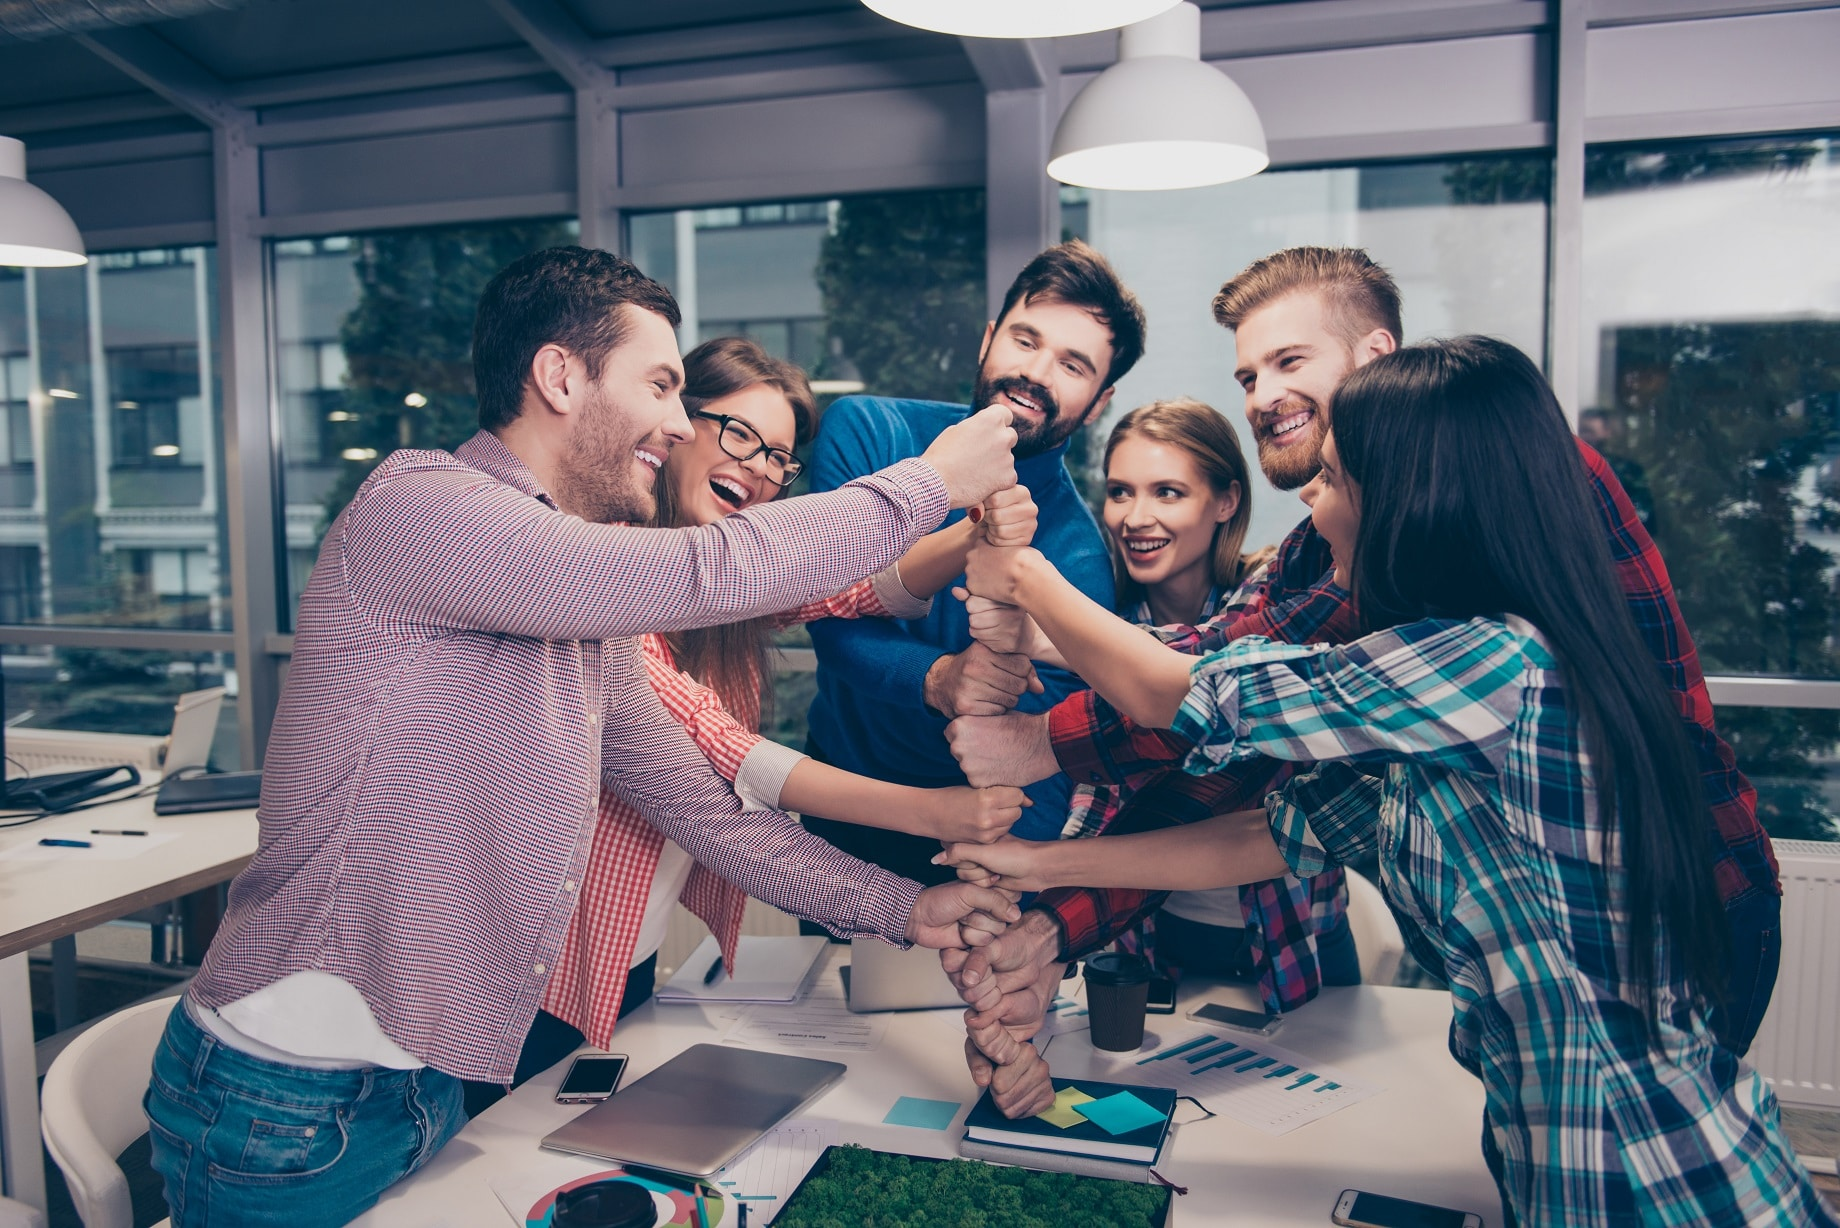 When is a Good Time for Team Building?